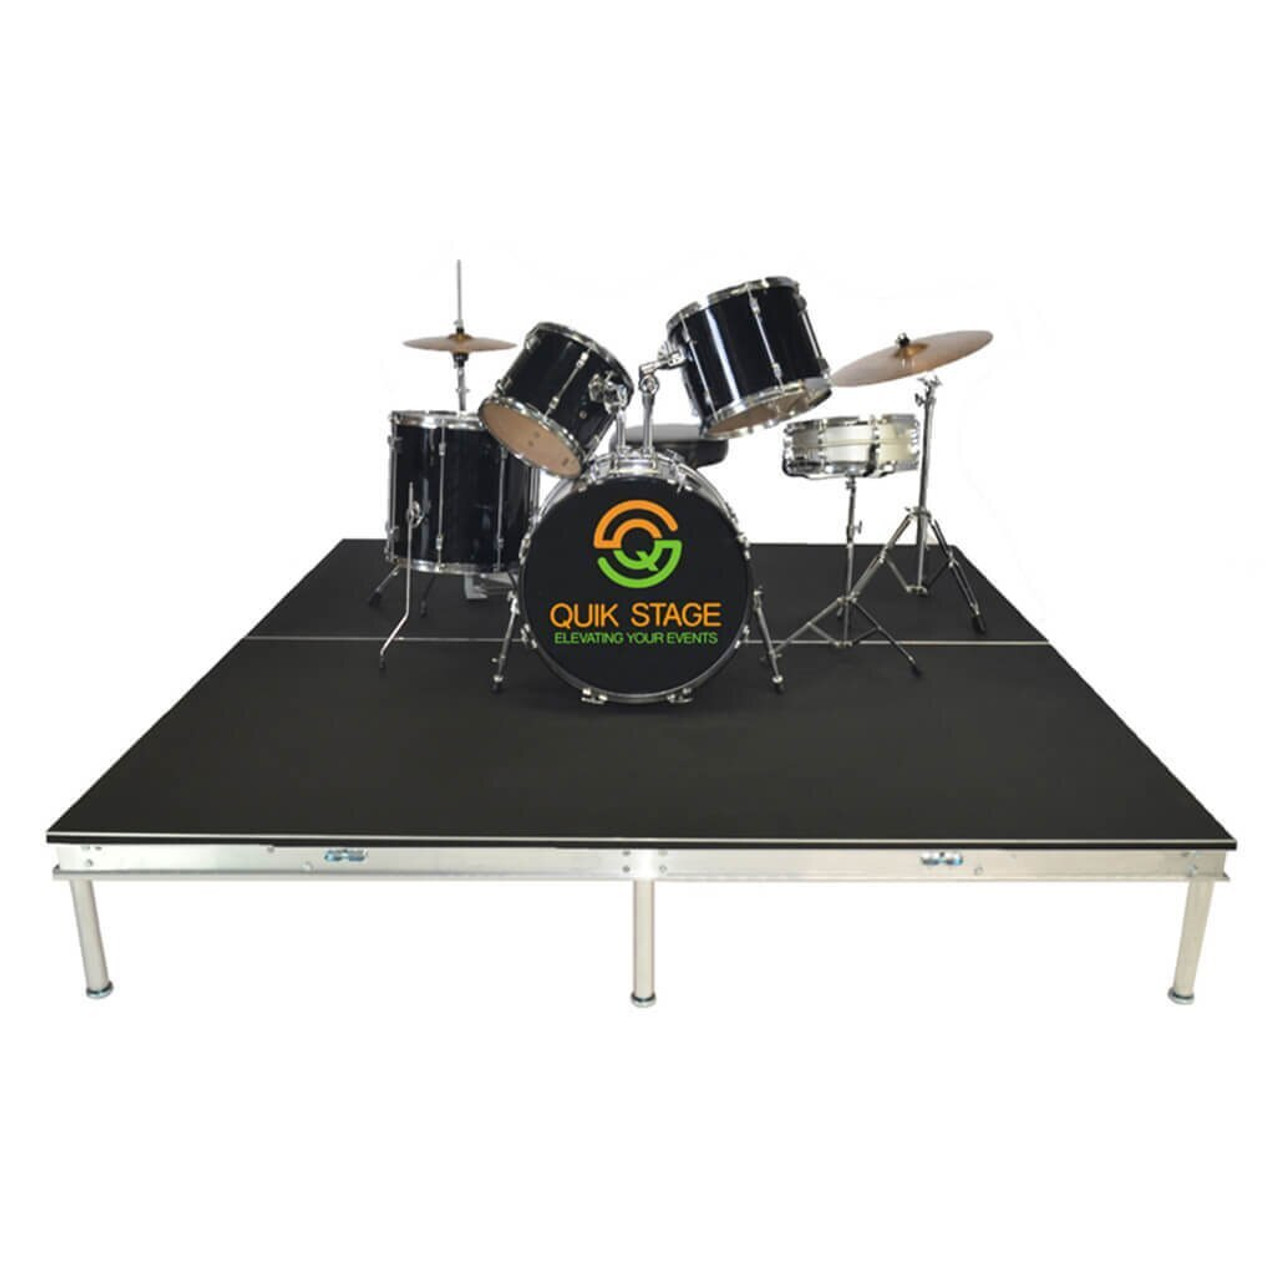 Quik Stage 4' x 20' High Portable Stage Package with Black Polyvinyl Non-Skid Surface. Additional Heights and Surfaces Available - Drum Riser without skirting